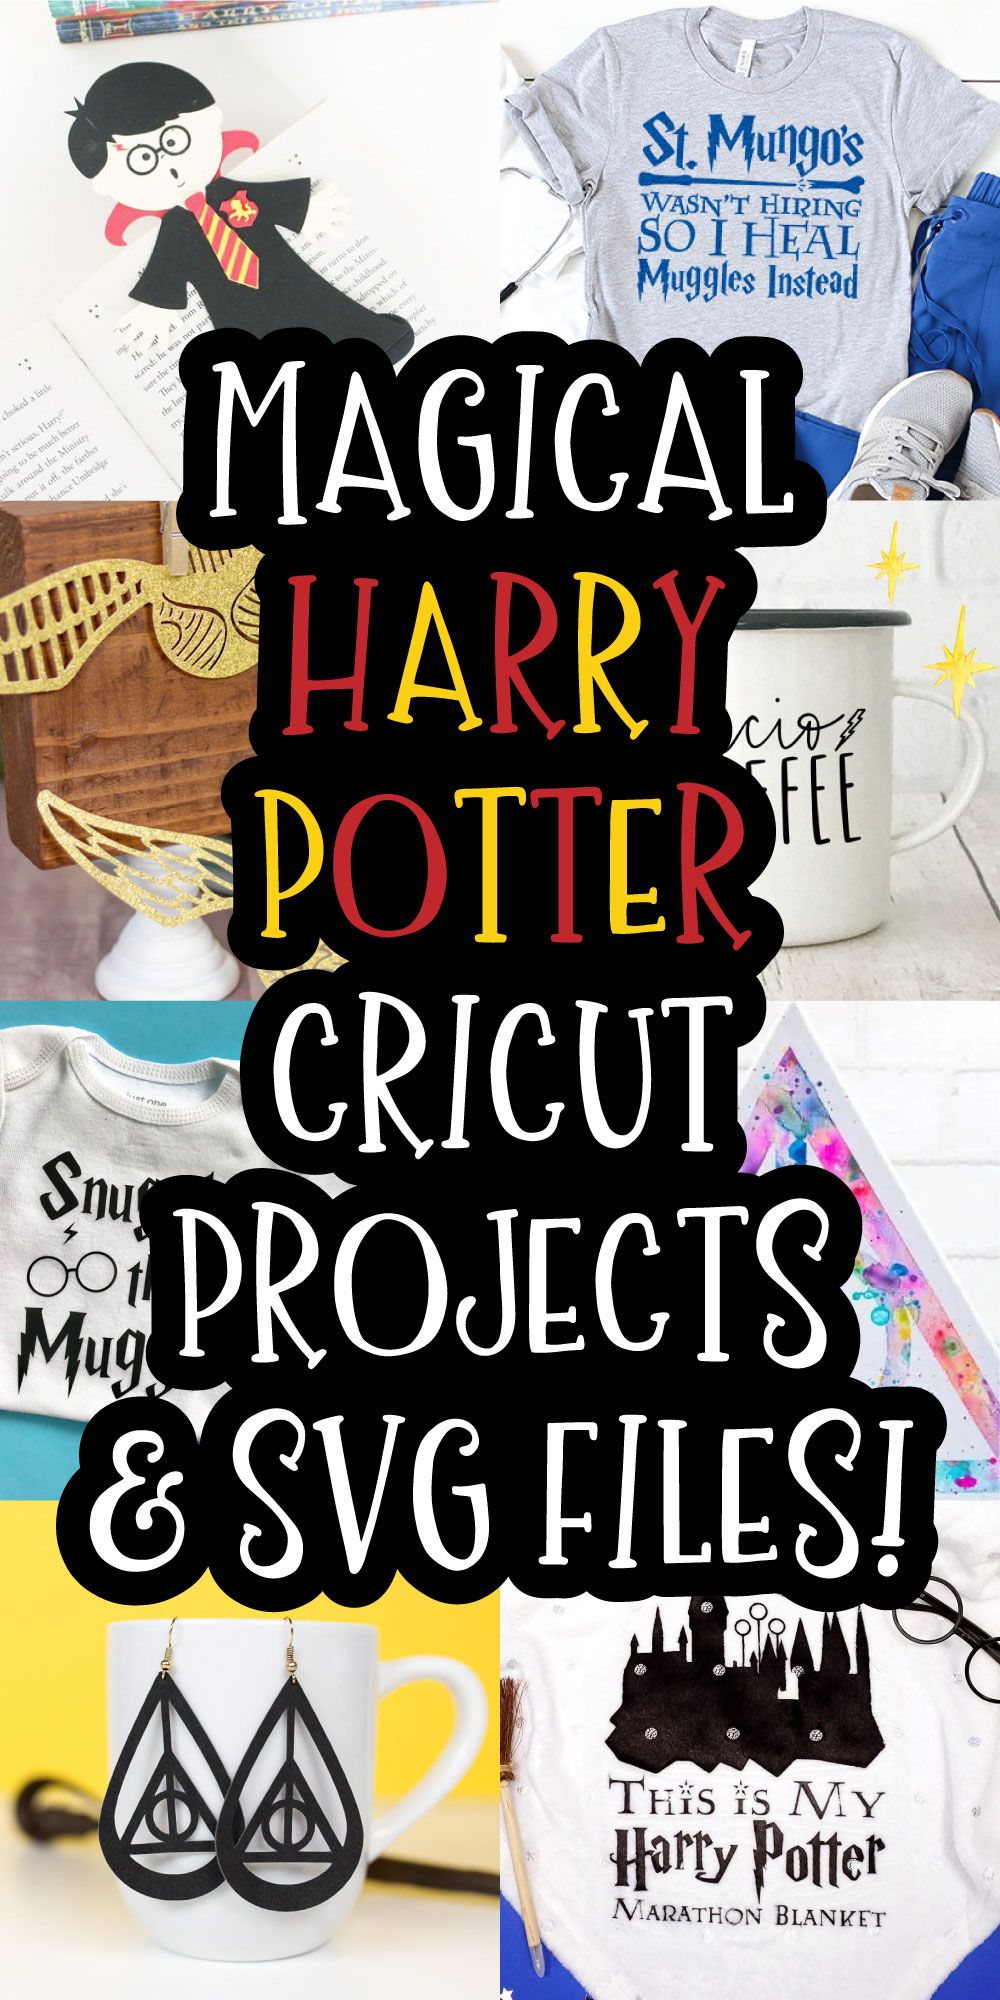 Magical Harry Potter Cricut Projects And Svg Files In 2020 Cricut Projects Vinyl Cricut Cricut Projects